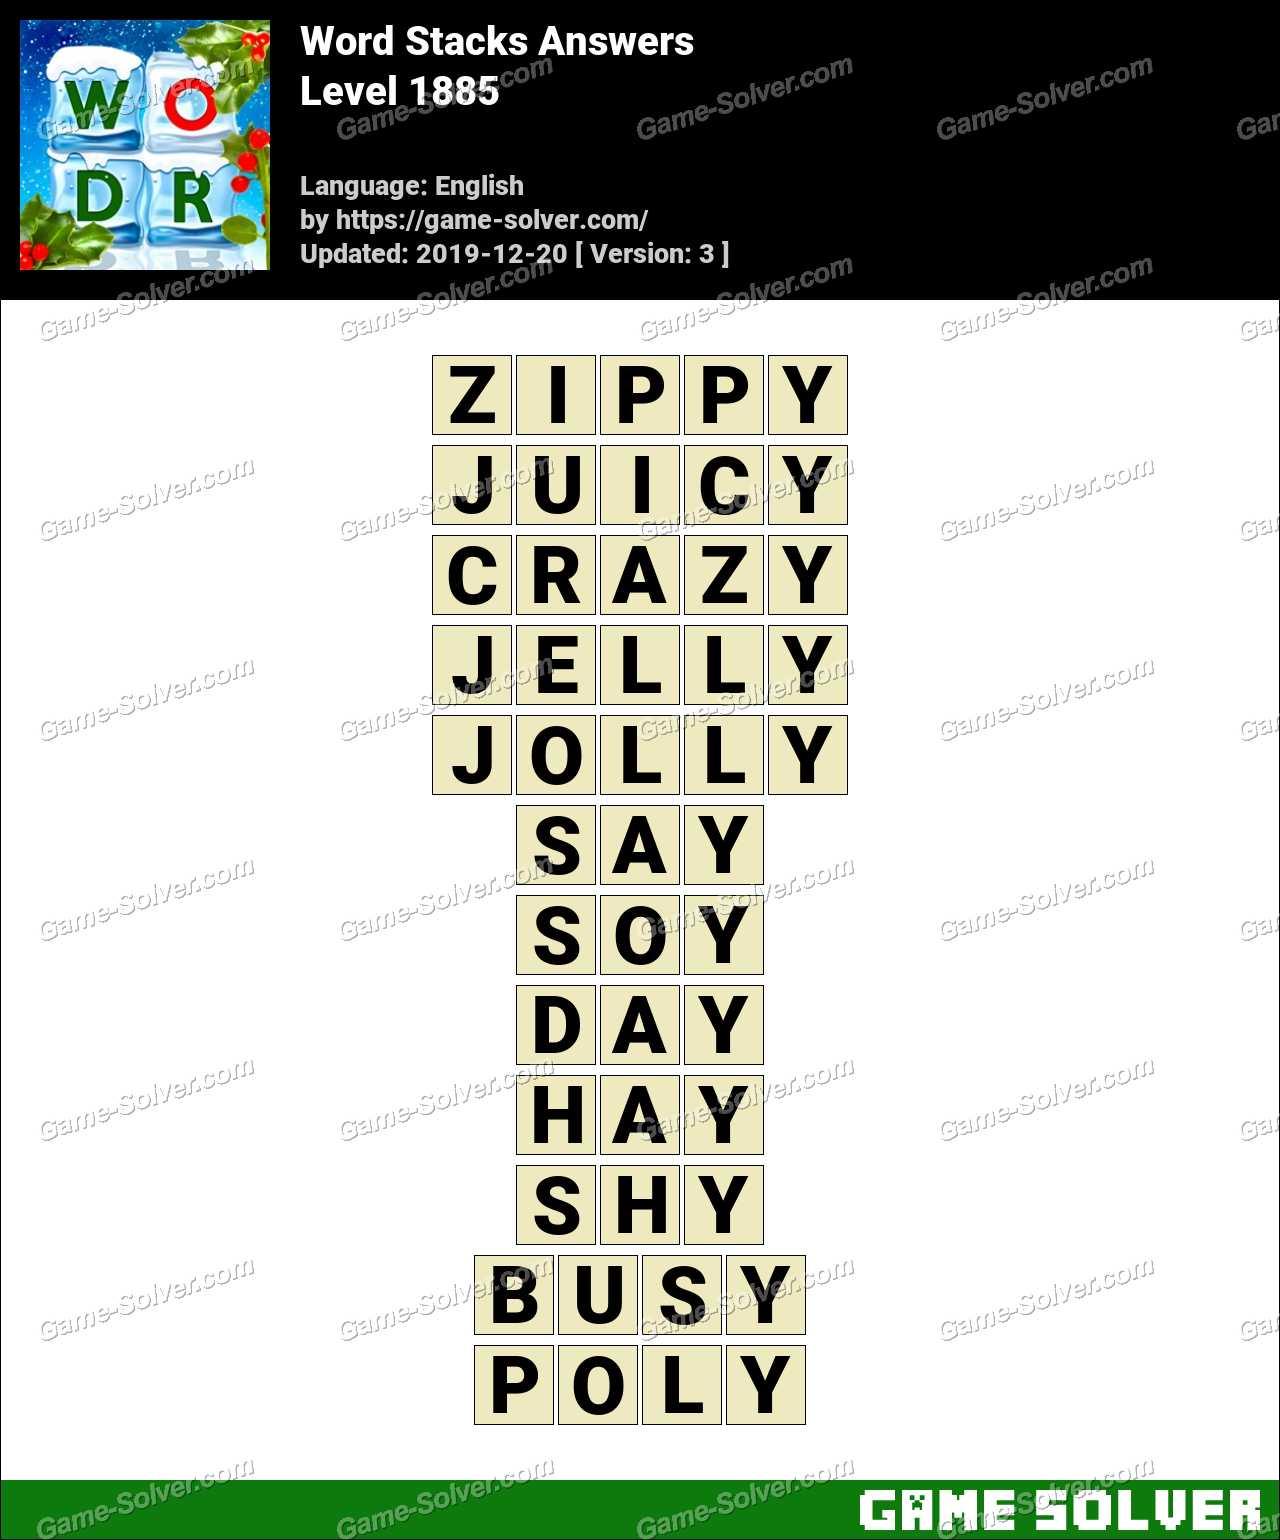 Word Stacks Level 1885 Answers